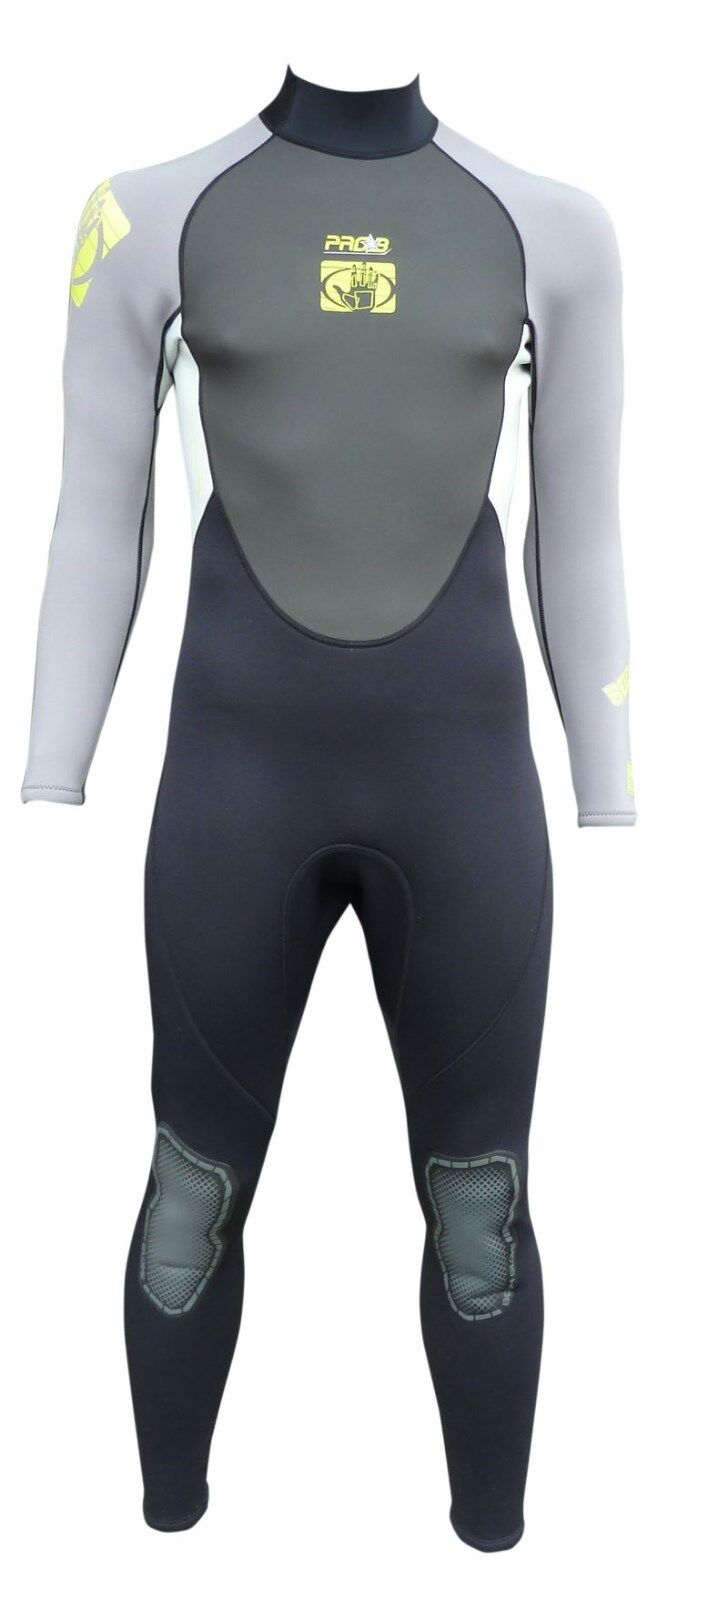 Muta in Neoprene Uomo 3 mm Muta da Sub Surfshorty Muta Immersione